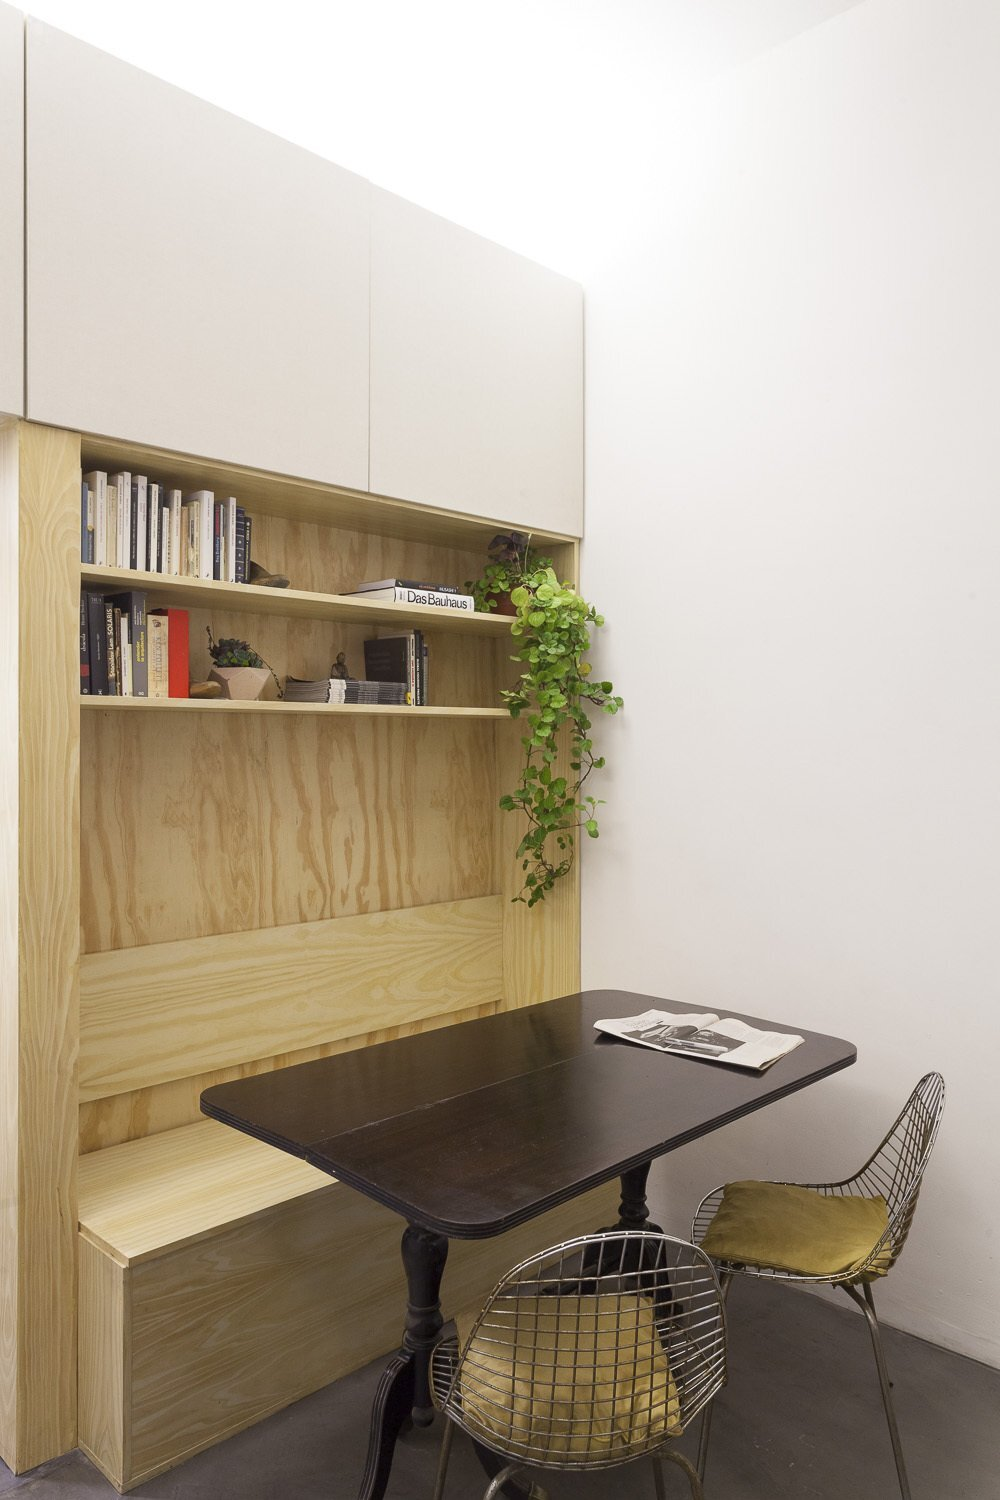 Thea Space - IR Arquitectura - Argentina - Dining Area and Desk - Humble Homes